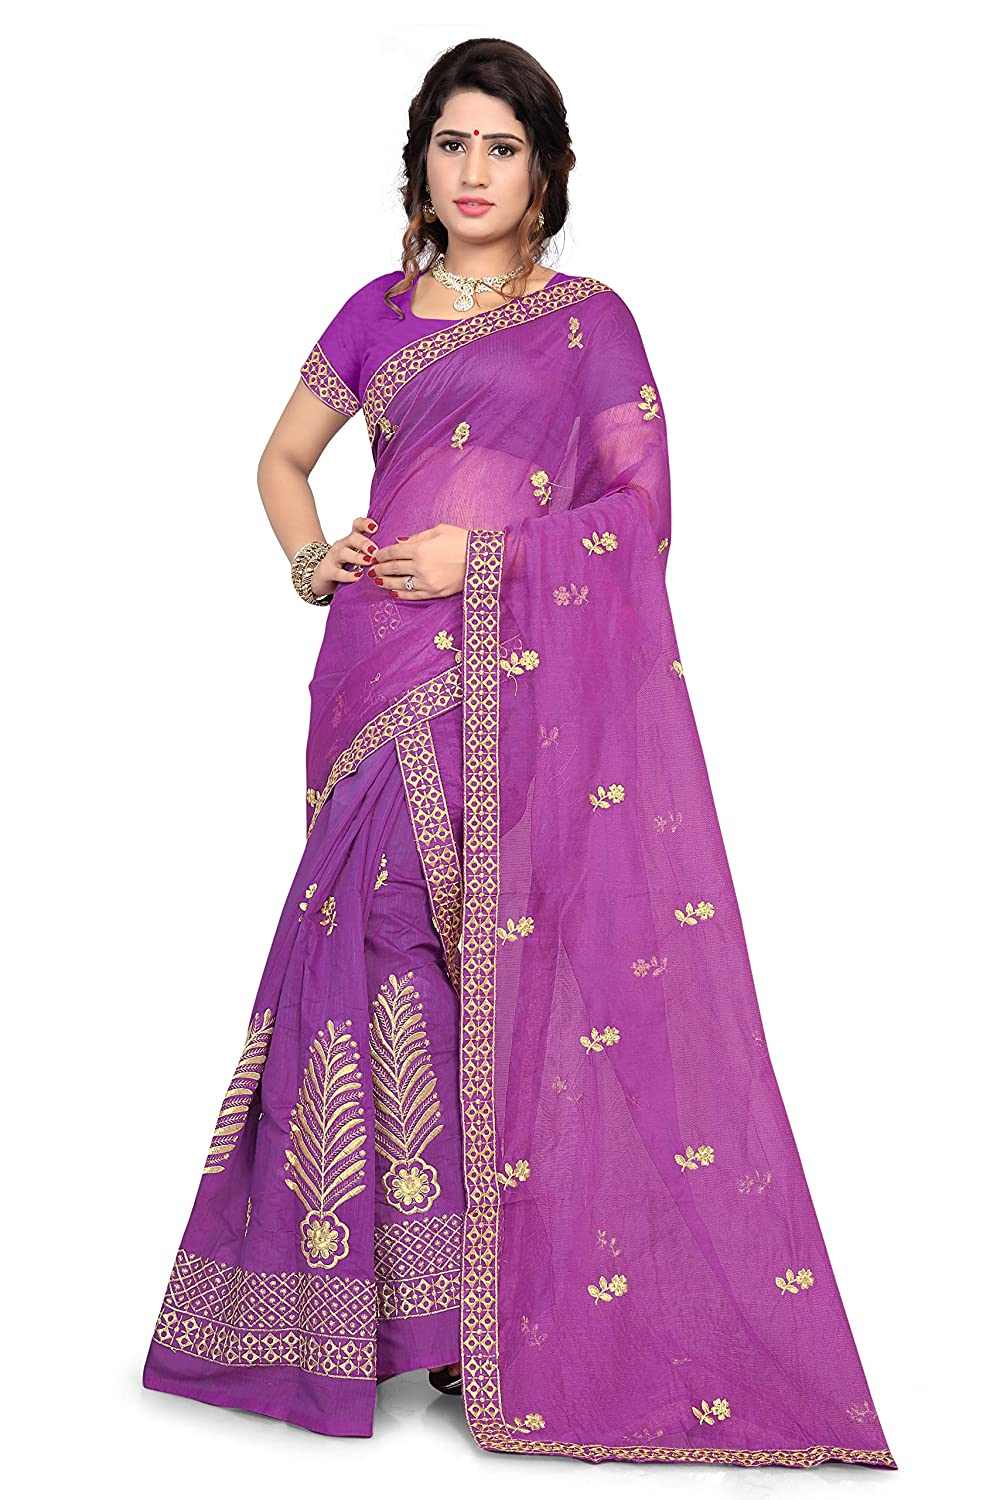 Art Silk Saree with Blouse Piece For Party Wear